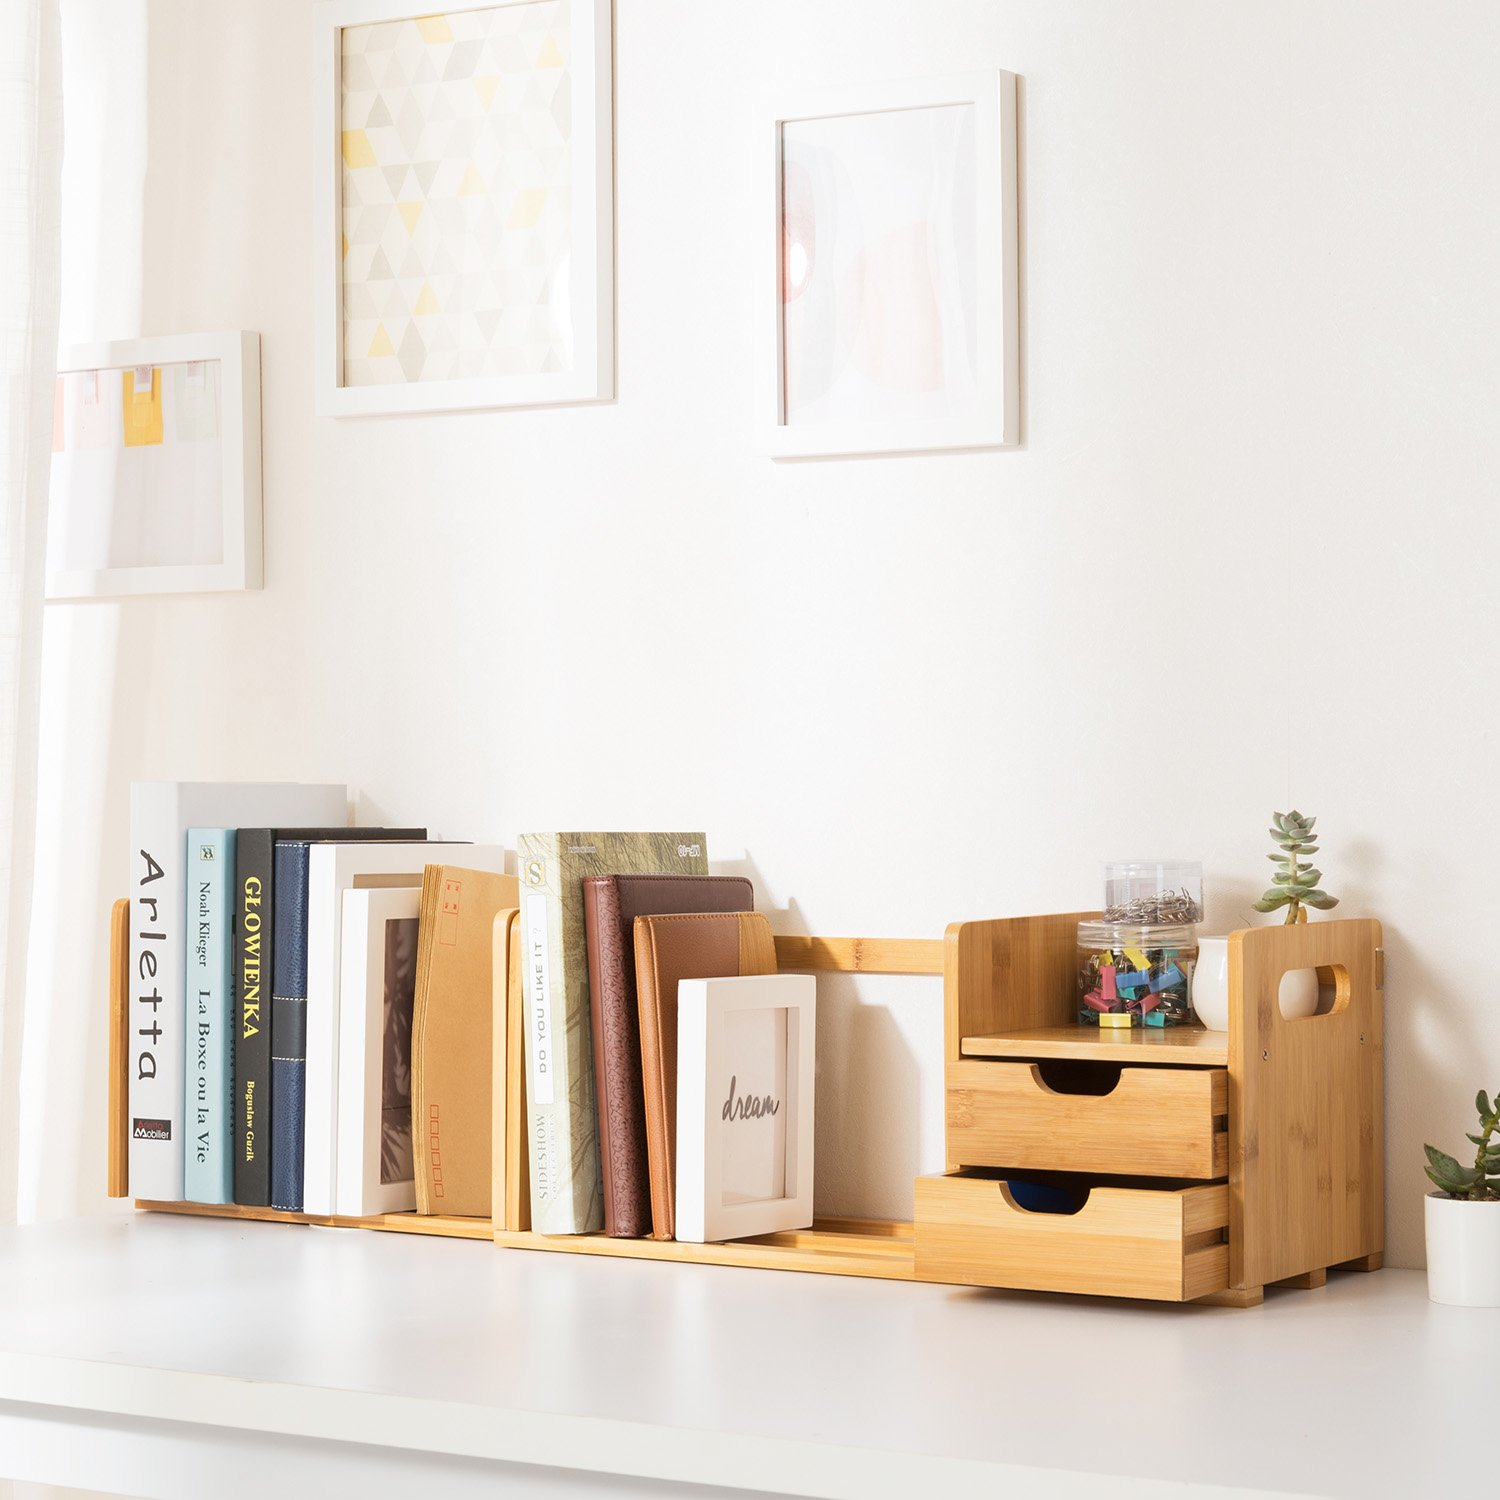 Ollieroo Natural Bamboo Desk Organizer with Extendable Storage for Office and Home, CD Holder Media Rack